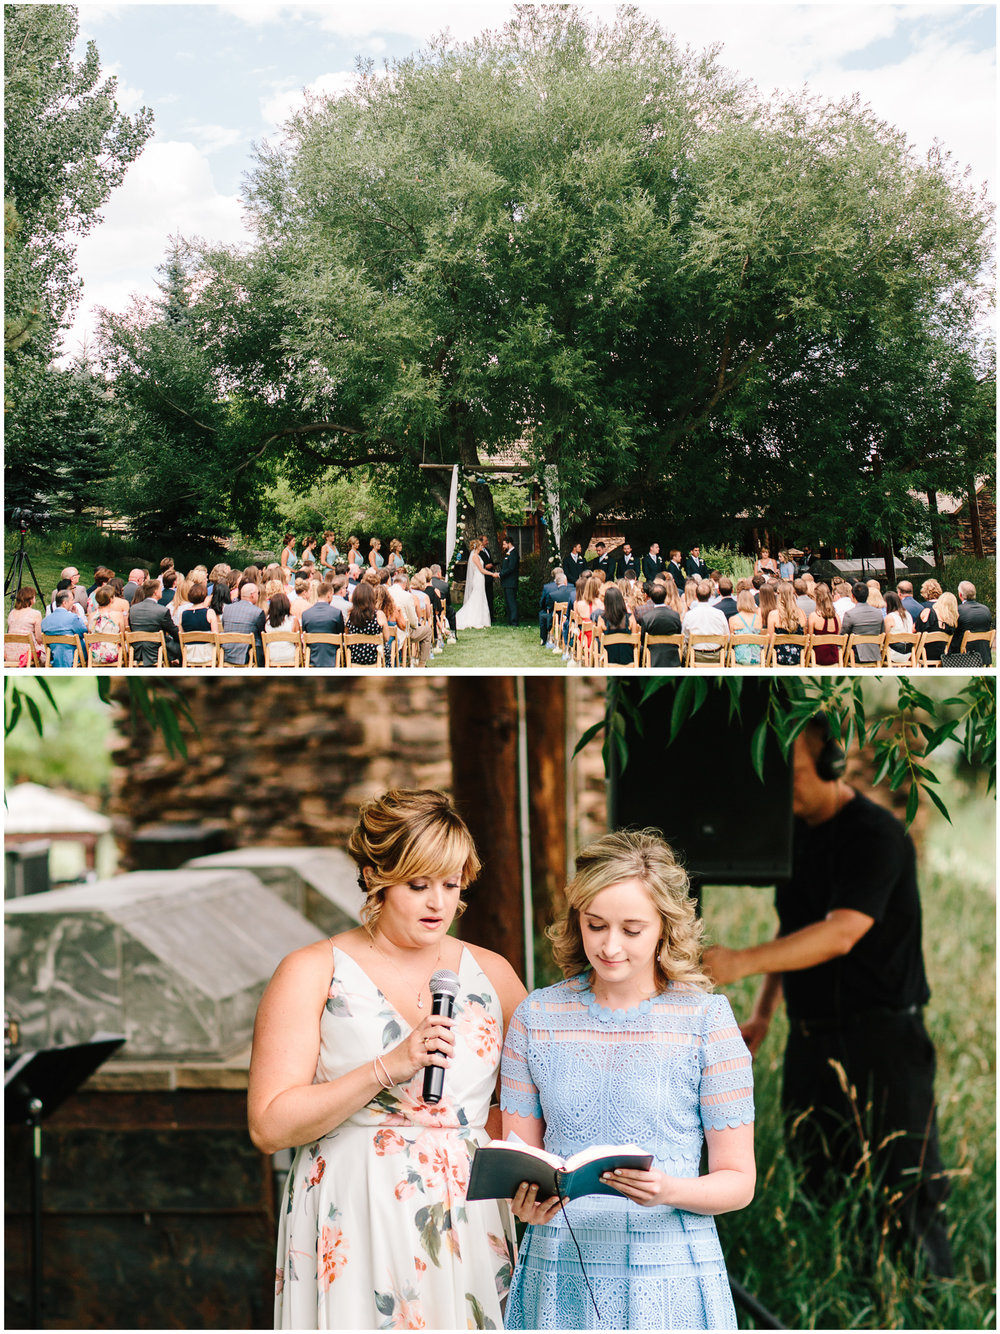 Spruce_Mountain_Ranch_Wedding_31.jpg